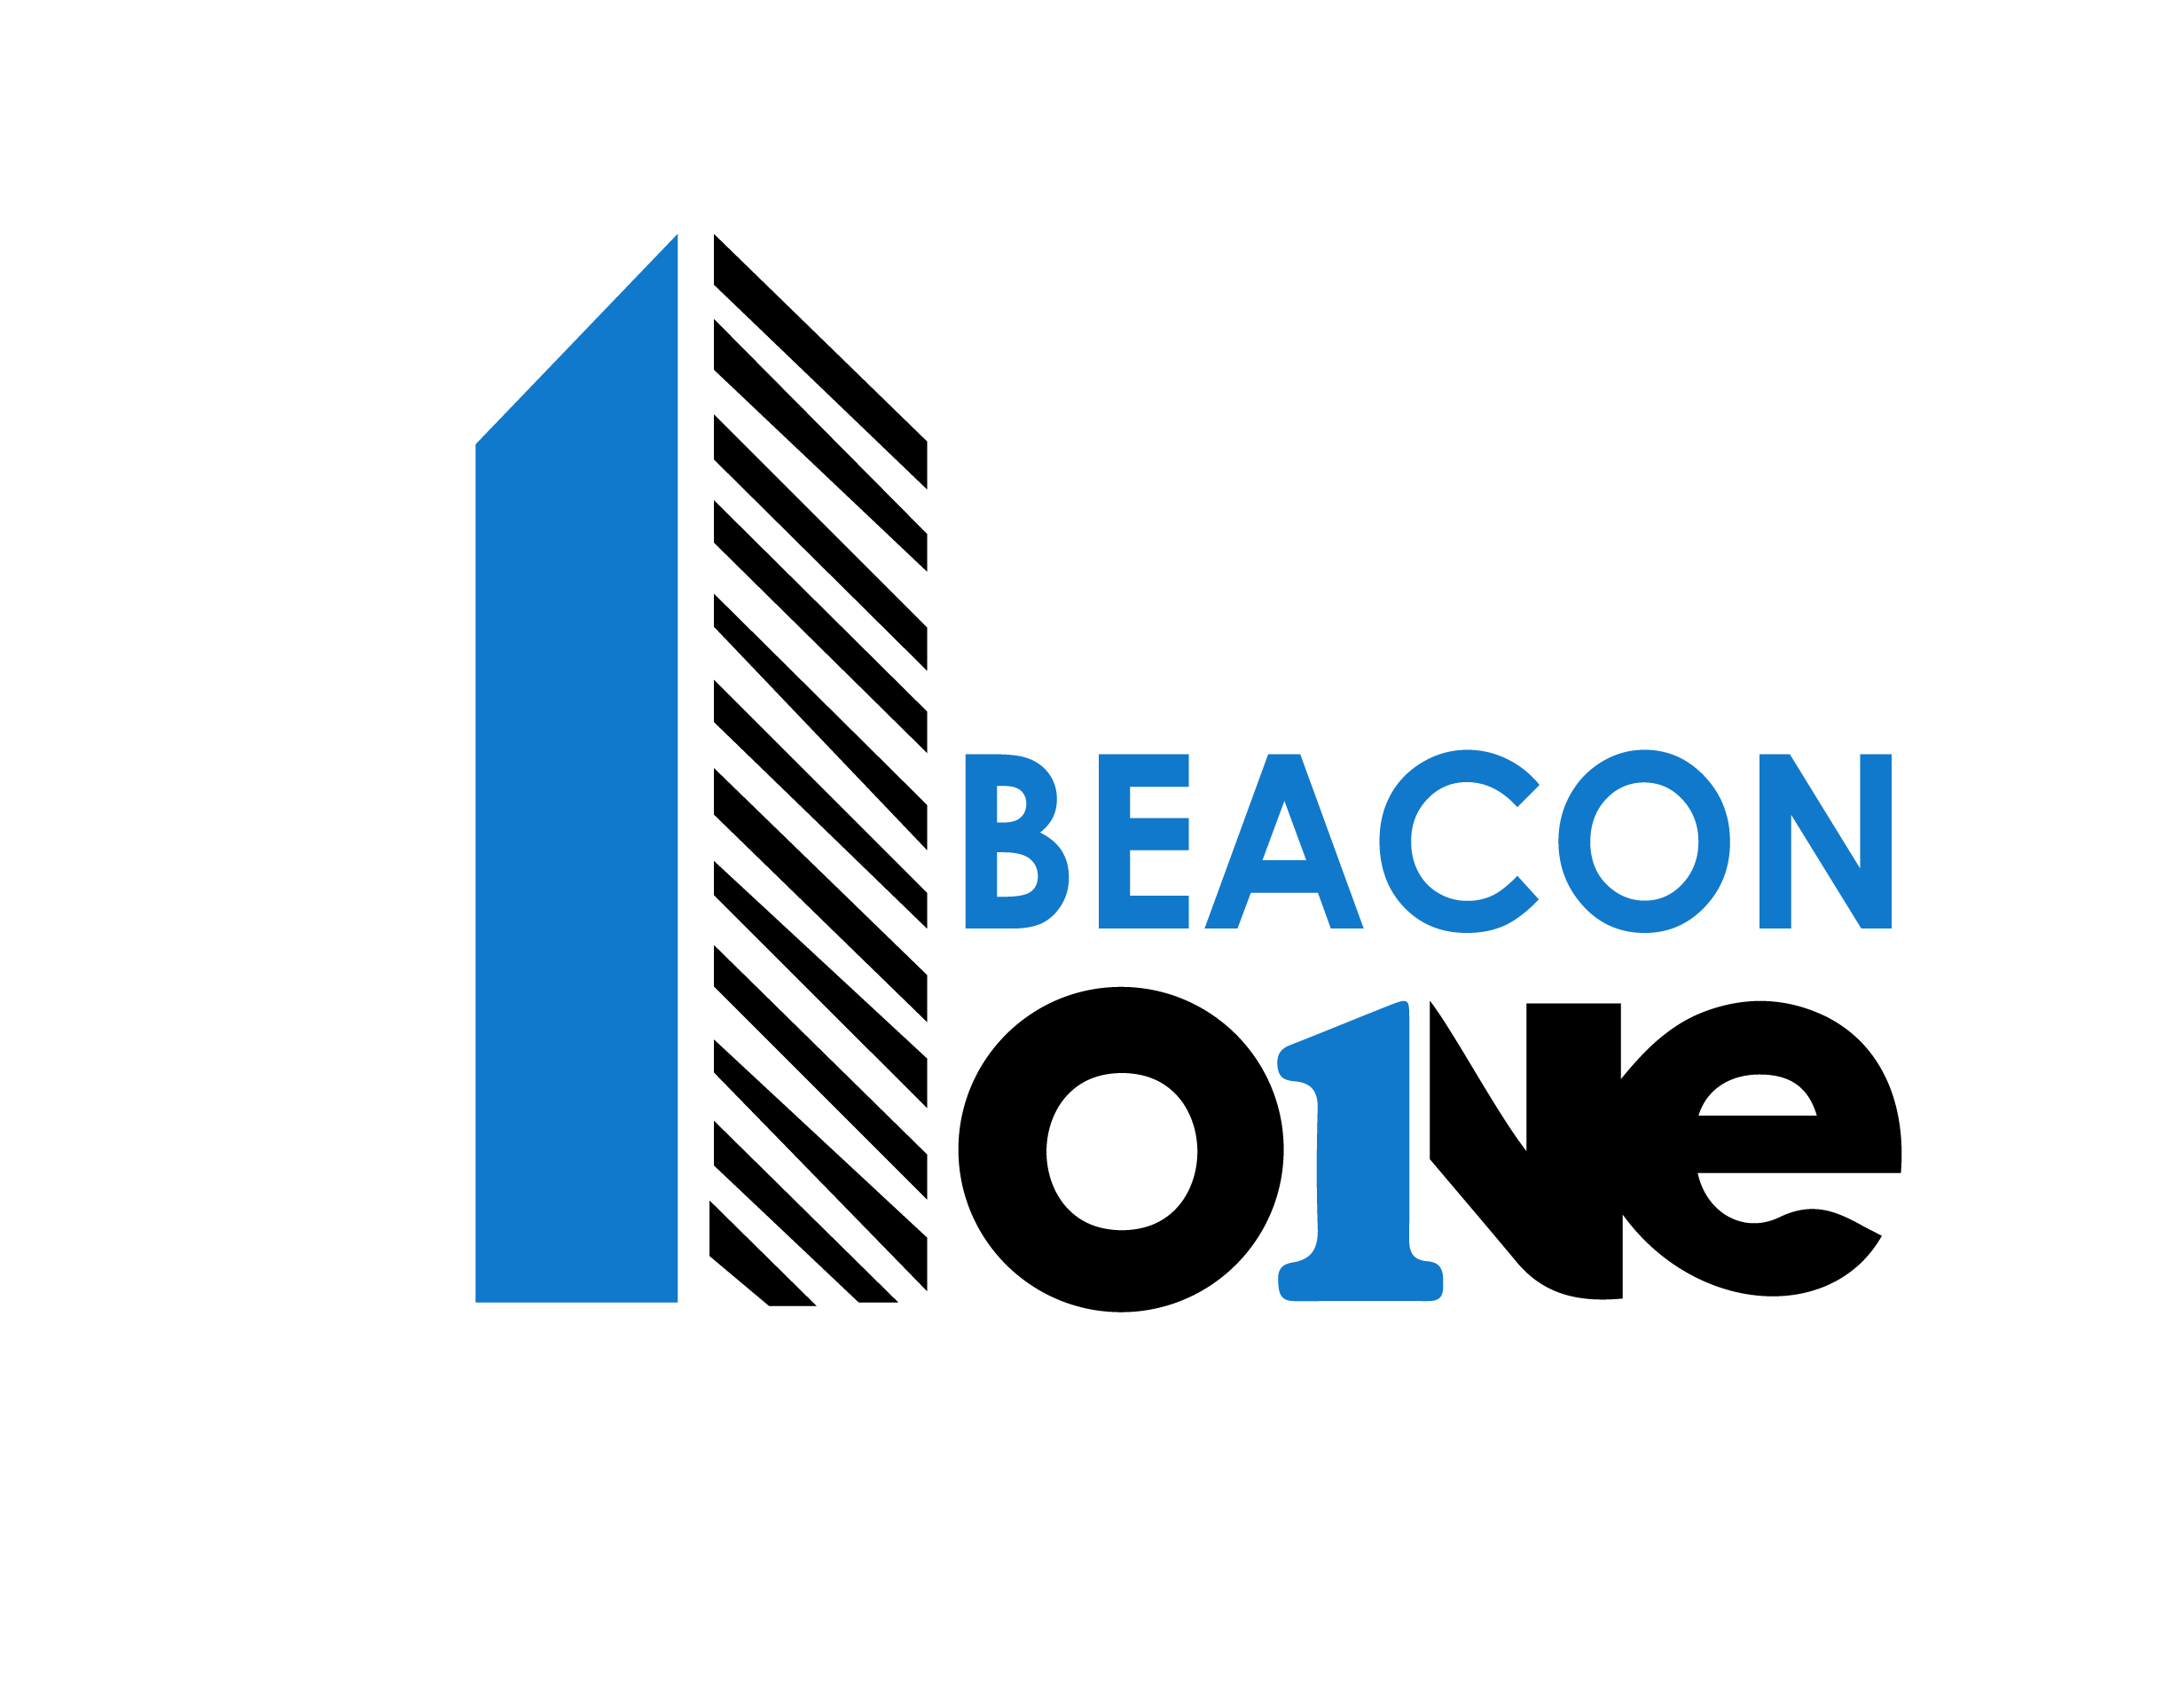 beacon-one-logo